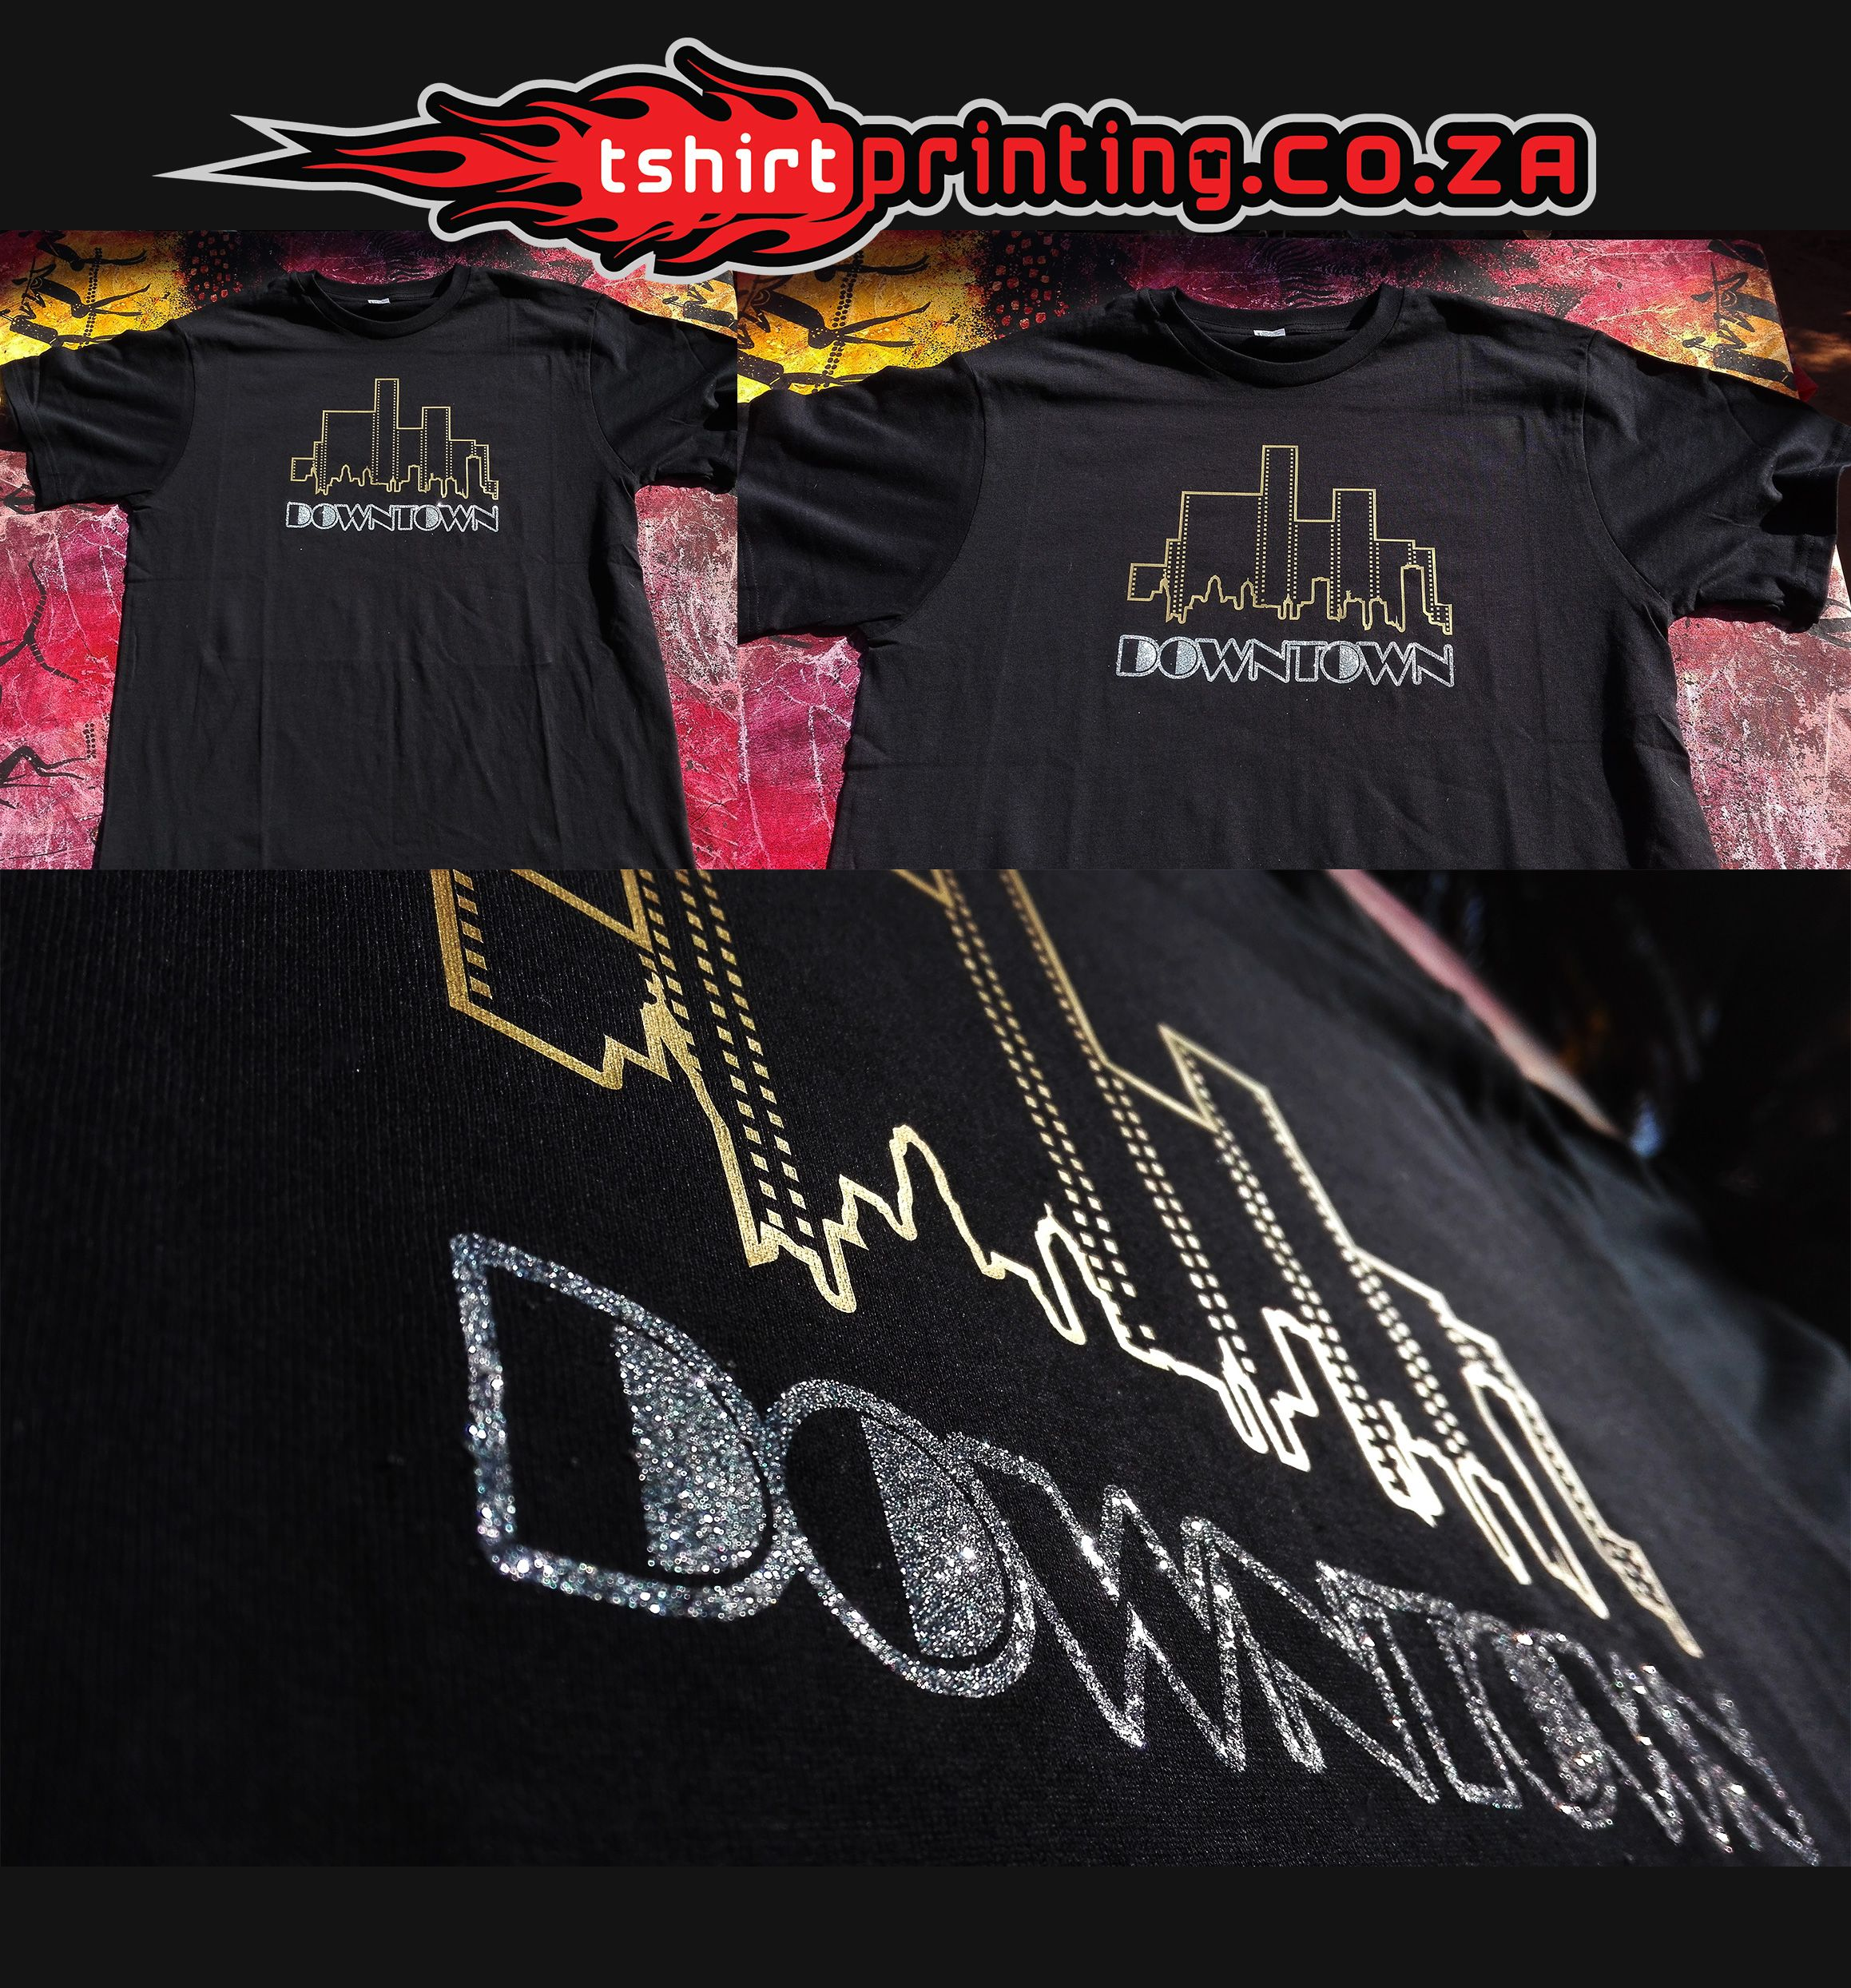 The Best Vinyl Printing In South Africa Sparkling Print Glitter Printing Ideas Printed Shirts T Shirt Cool T Shirts